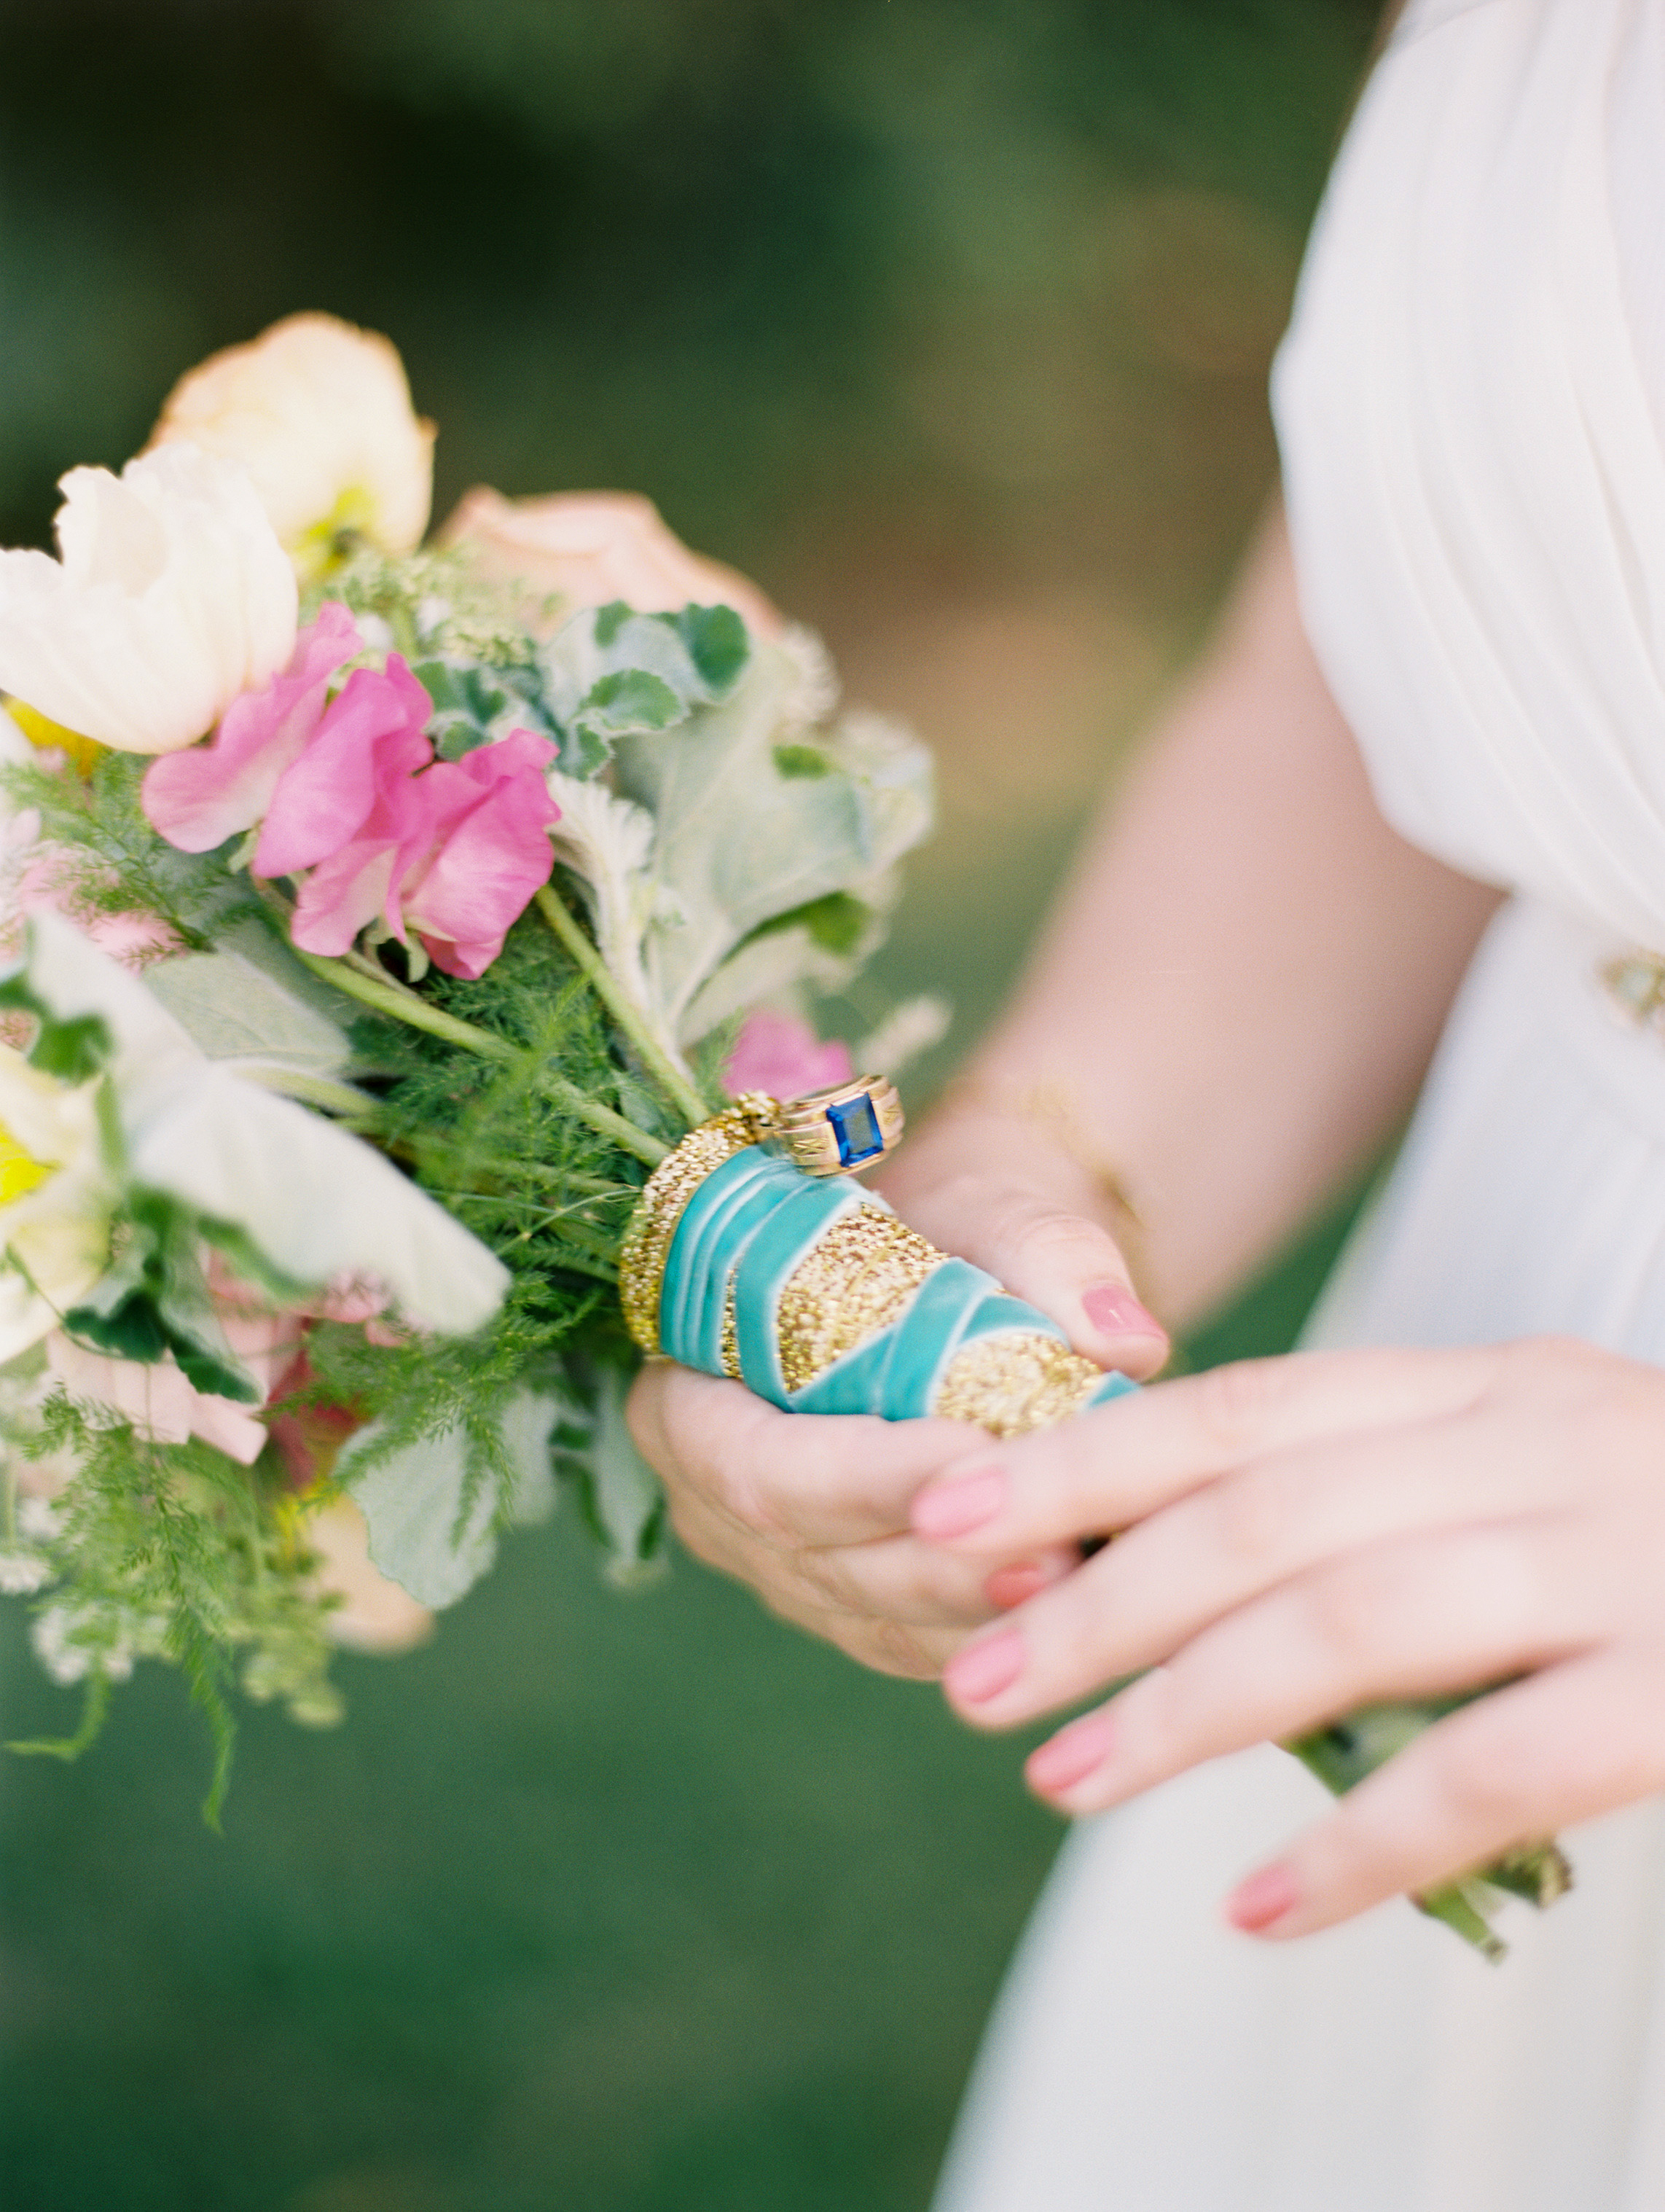 DeFiore Photography  captured this beautiful moment.  This fun and colorful bouquet included a ring from Grandma.